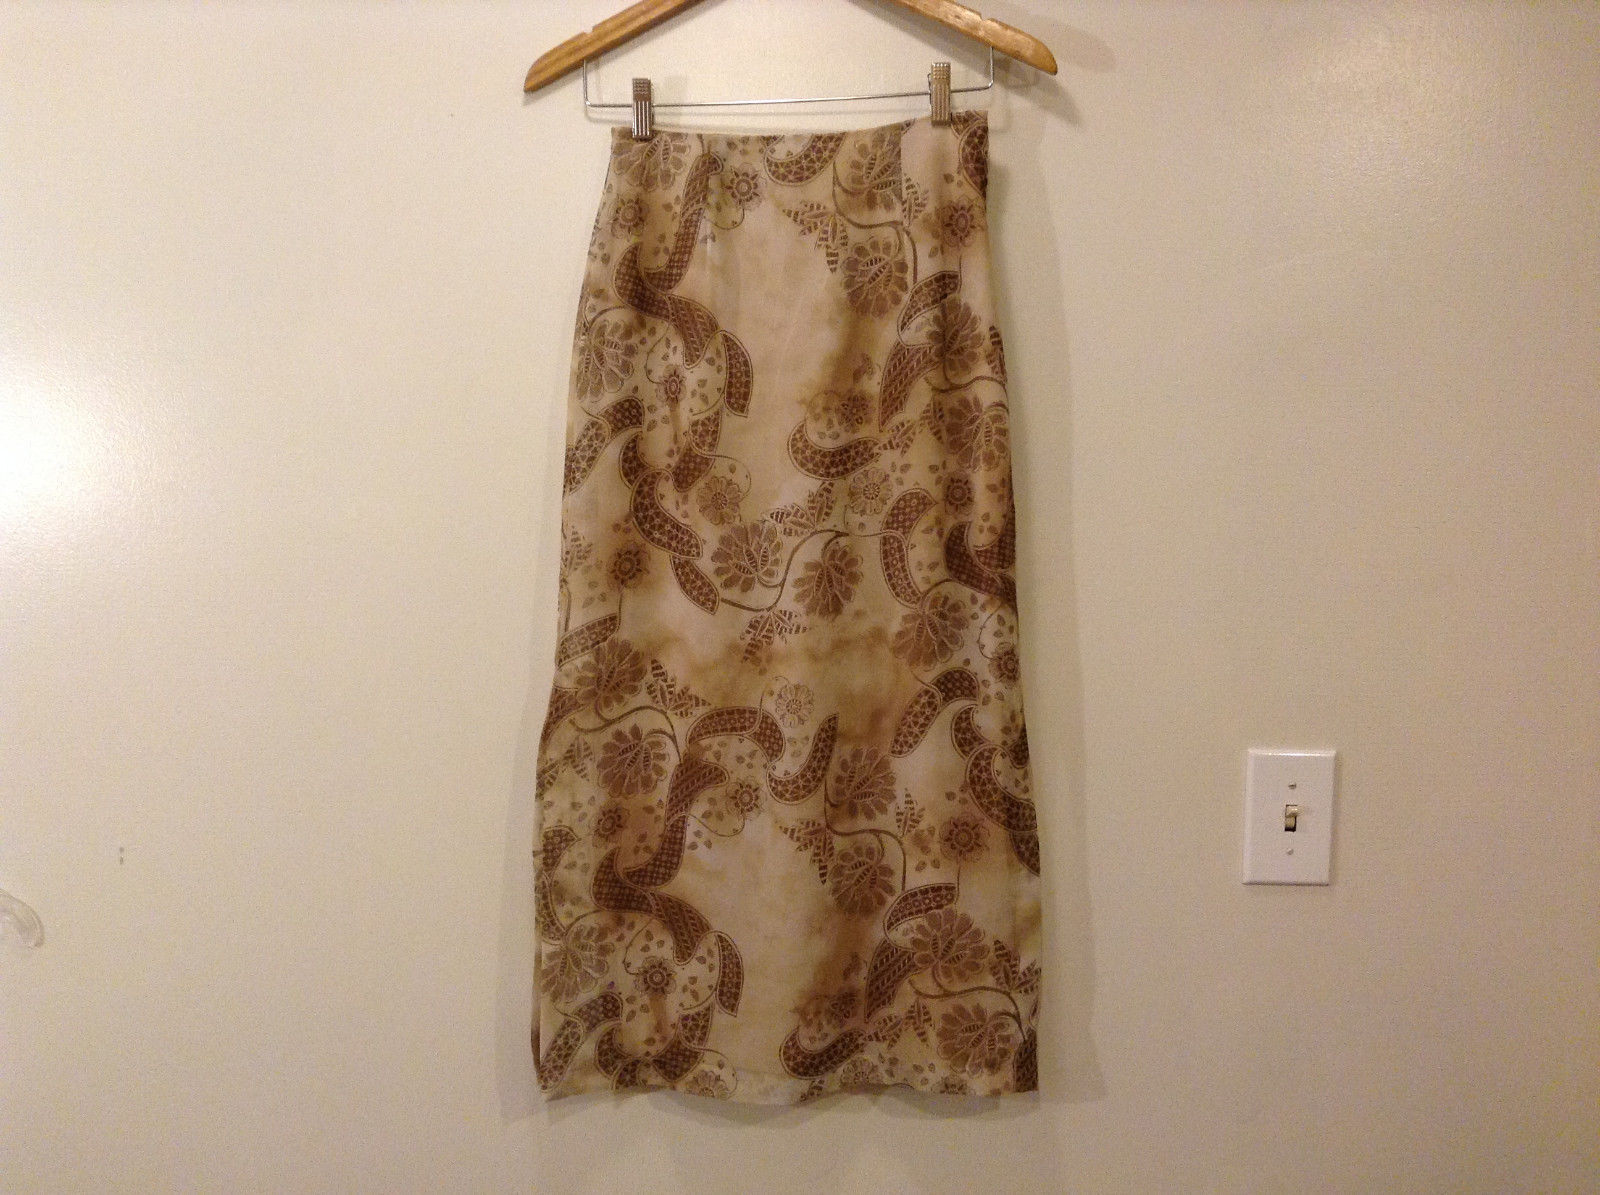 Ilyza Women's Petite Size 4 Straight Skirt Beige & Brown Geometric Floral Print